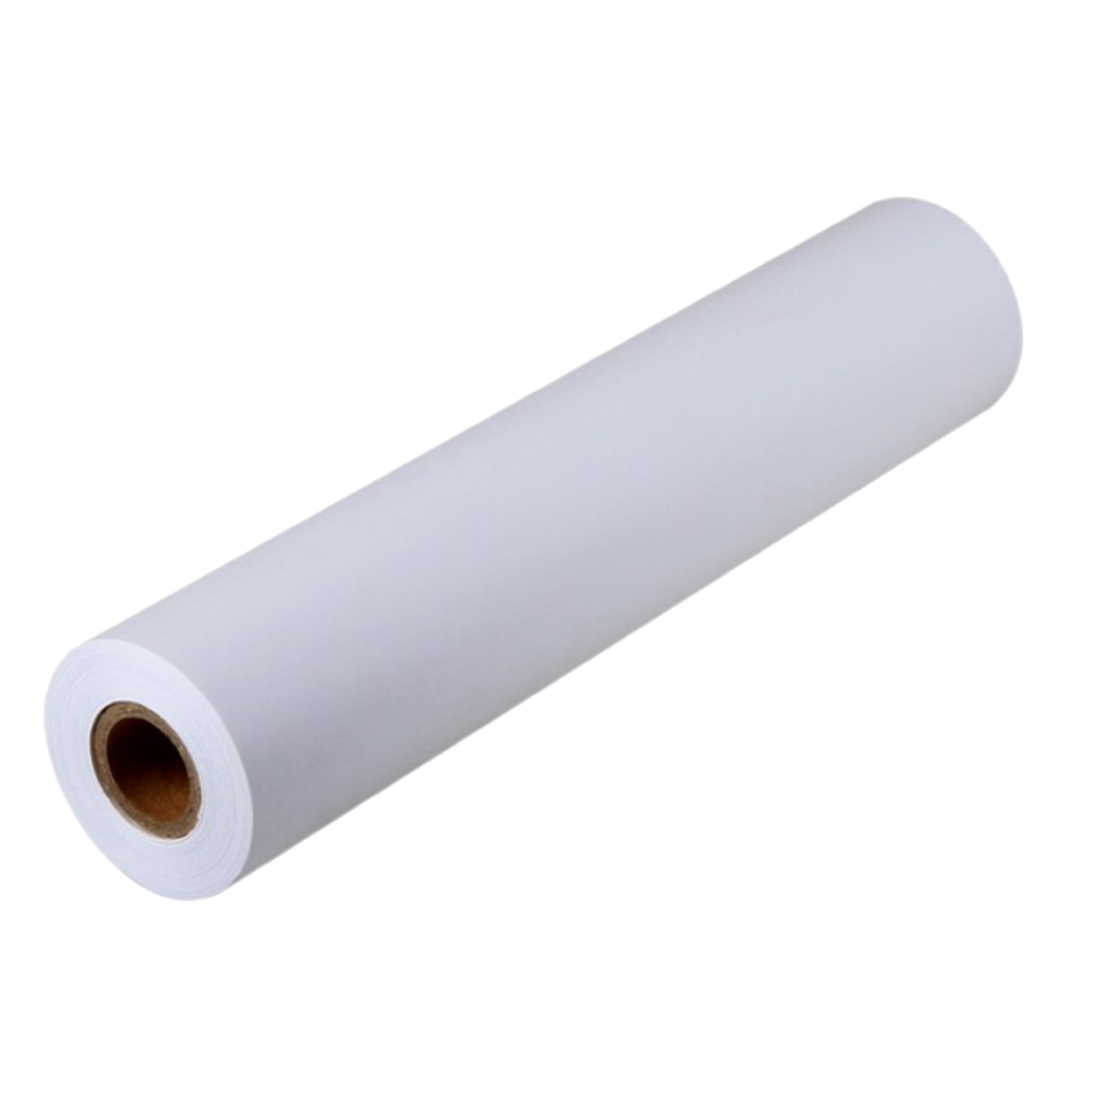 1 Roll 2500*30cm Smooth Kids Sketching Paper Painting Paper Roll Painting With Drawing Stick For Kids Toy Colorful Drawing Toys